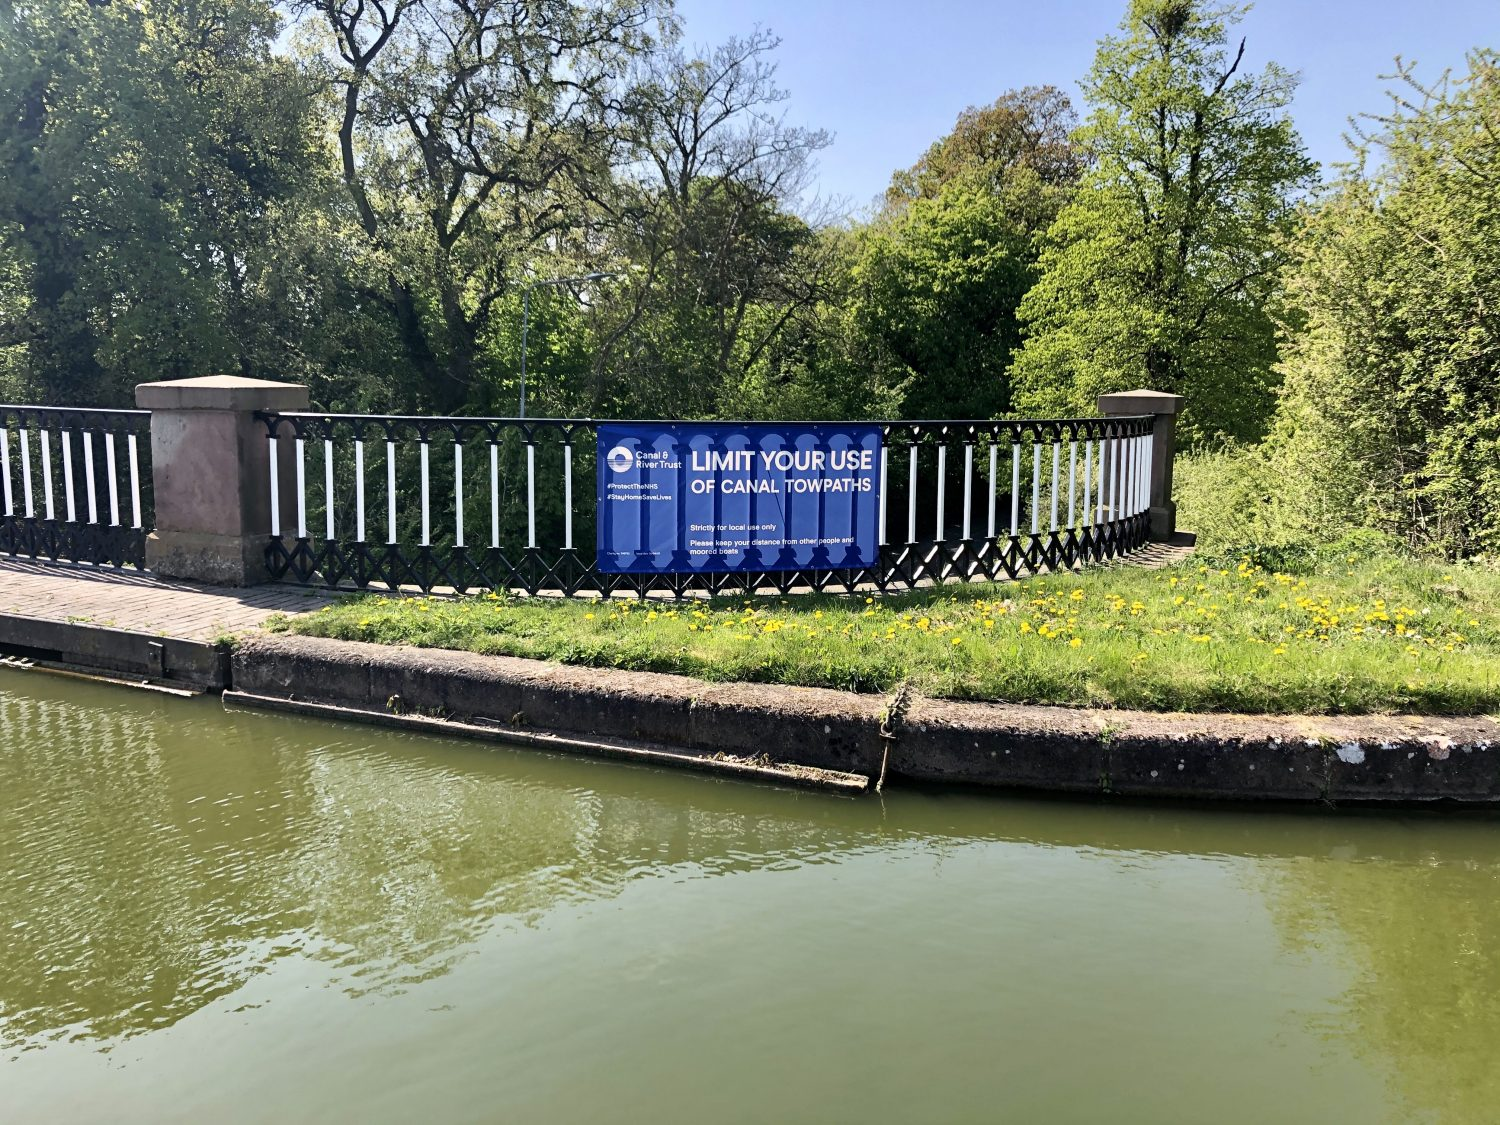 CRT notice on restricting towpath use April 2020